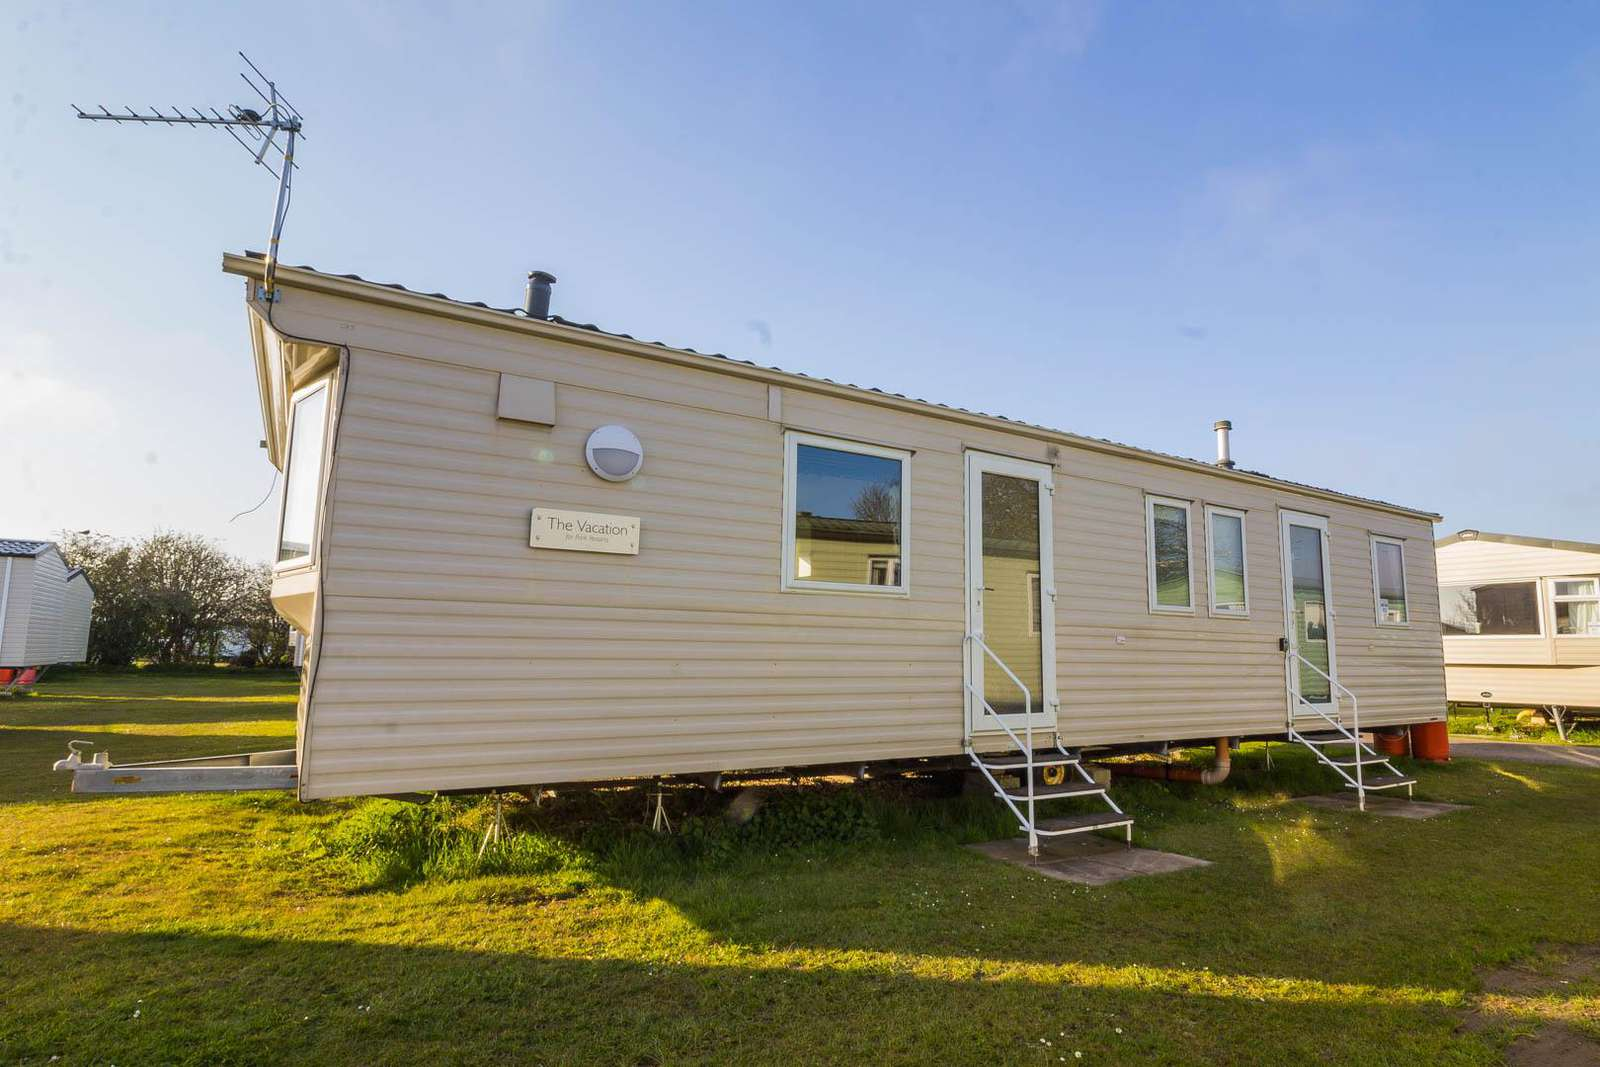 35082B – Beaver Road, 3 bed, 8 berth caravan with double glazing. Emerald rated. - property